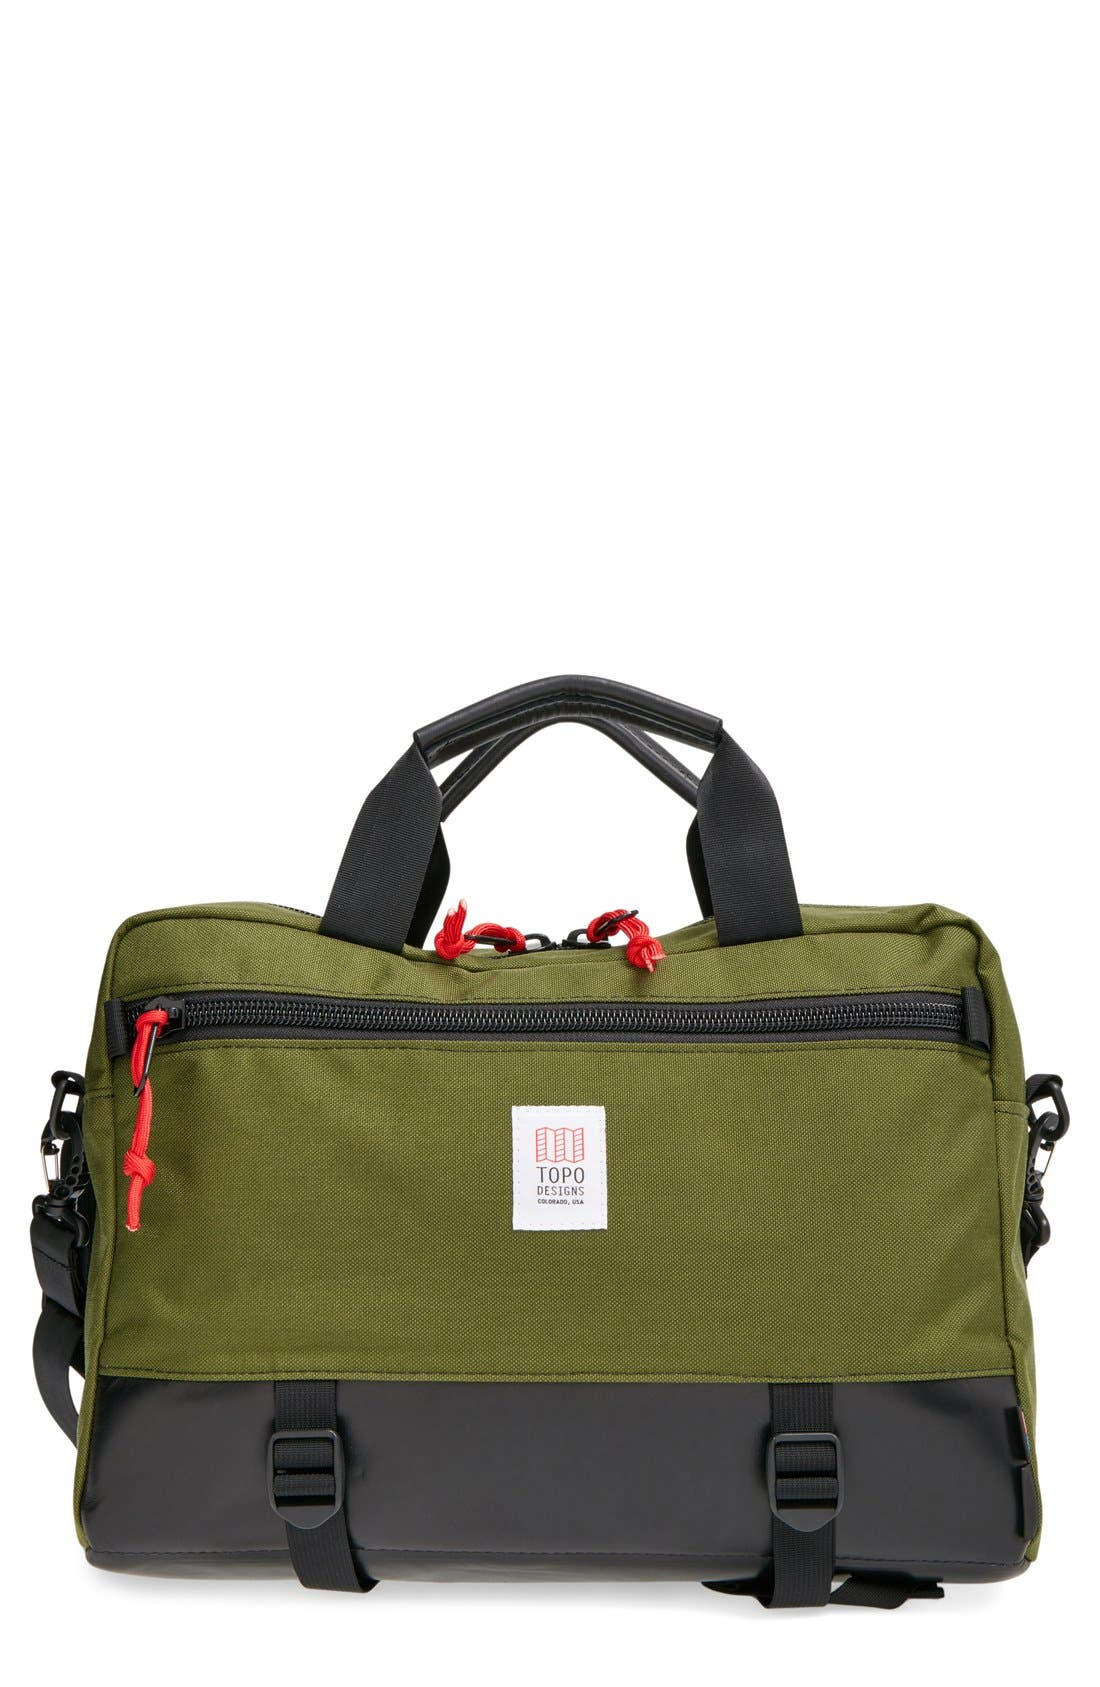 TOPO DESIGNS 'COMMUTER' BRIEFCASE - GREEN